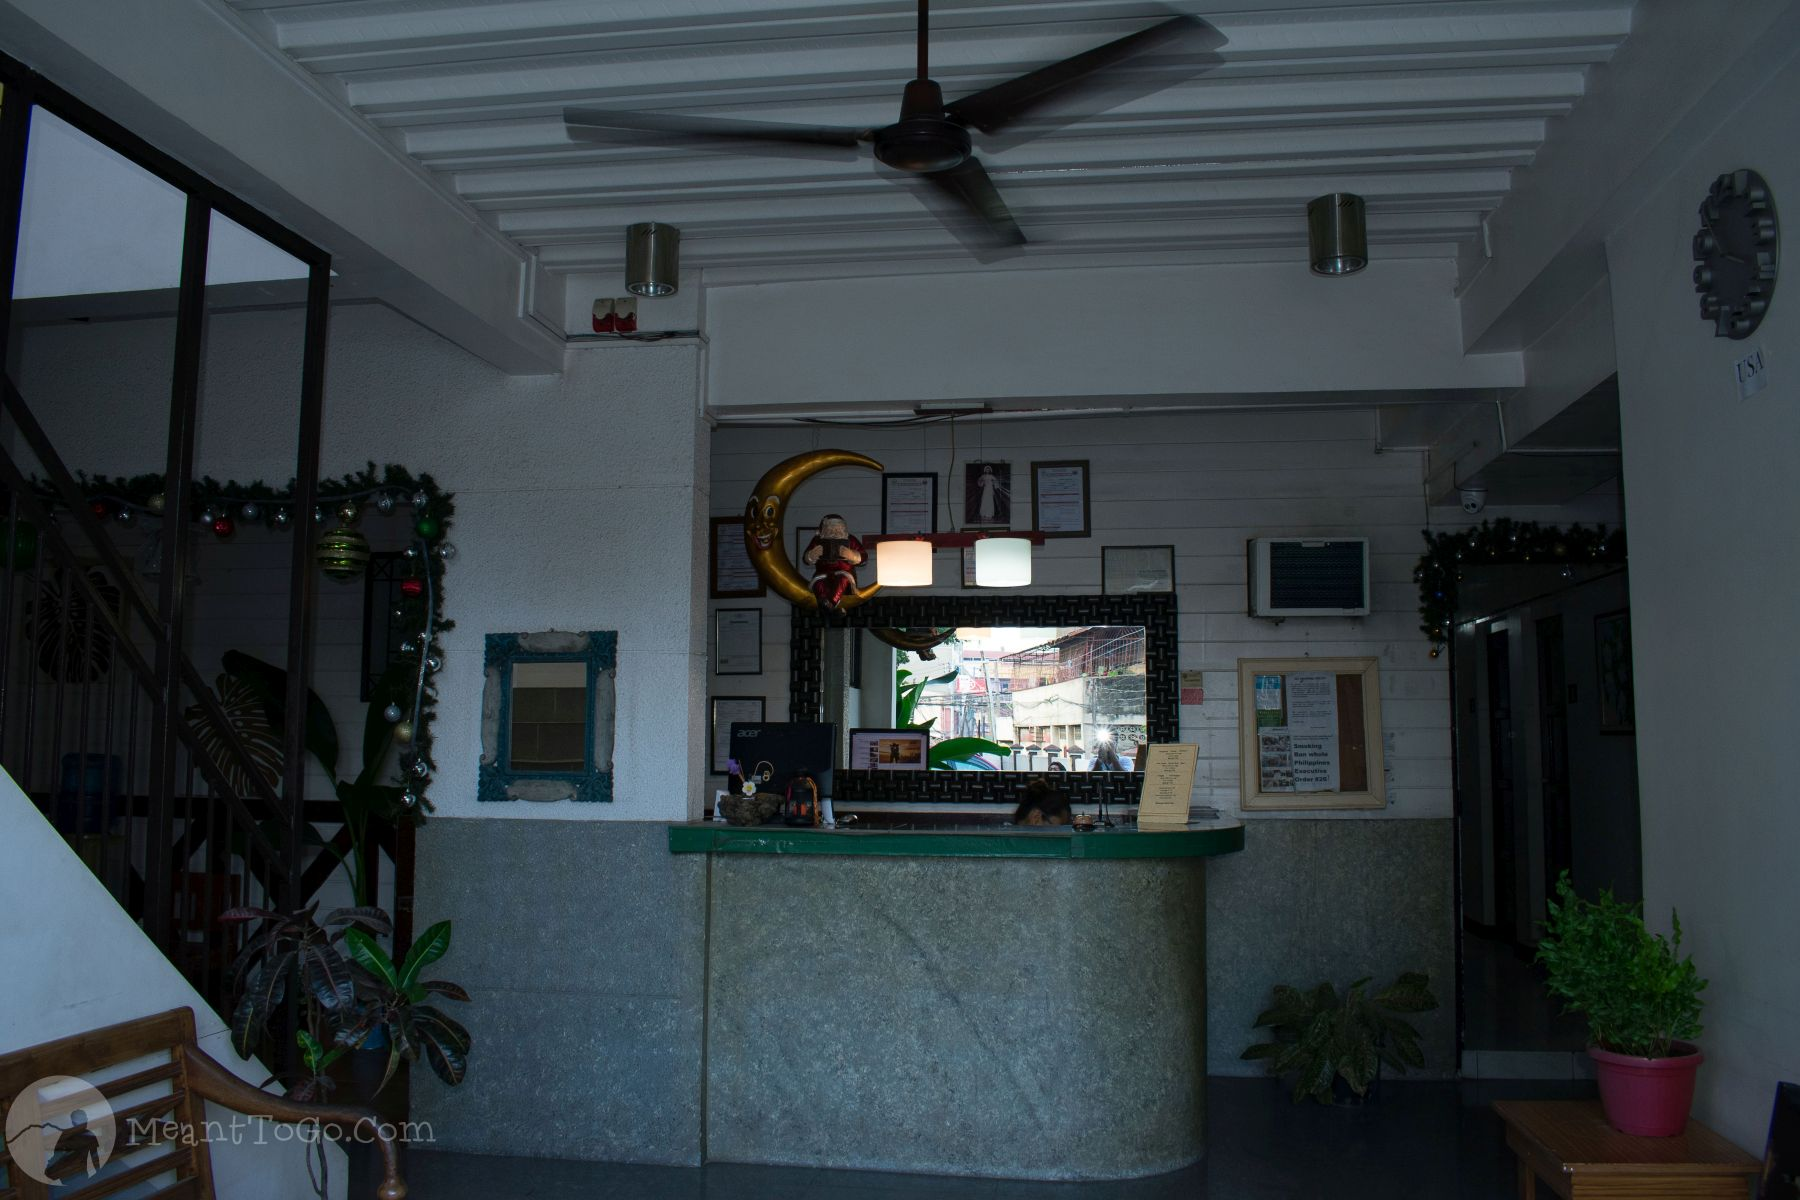 St. Nicolas Inn's check-in counter, lobby